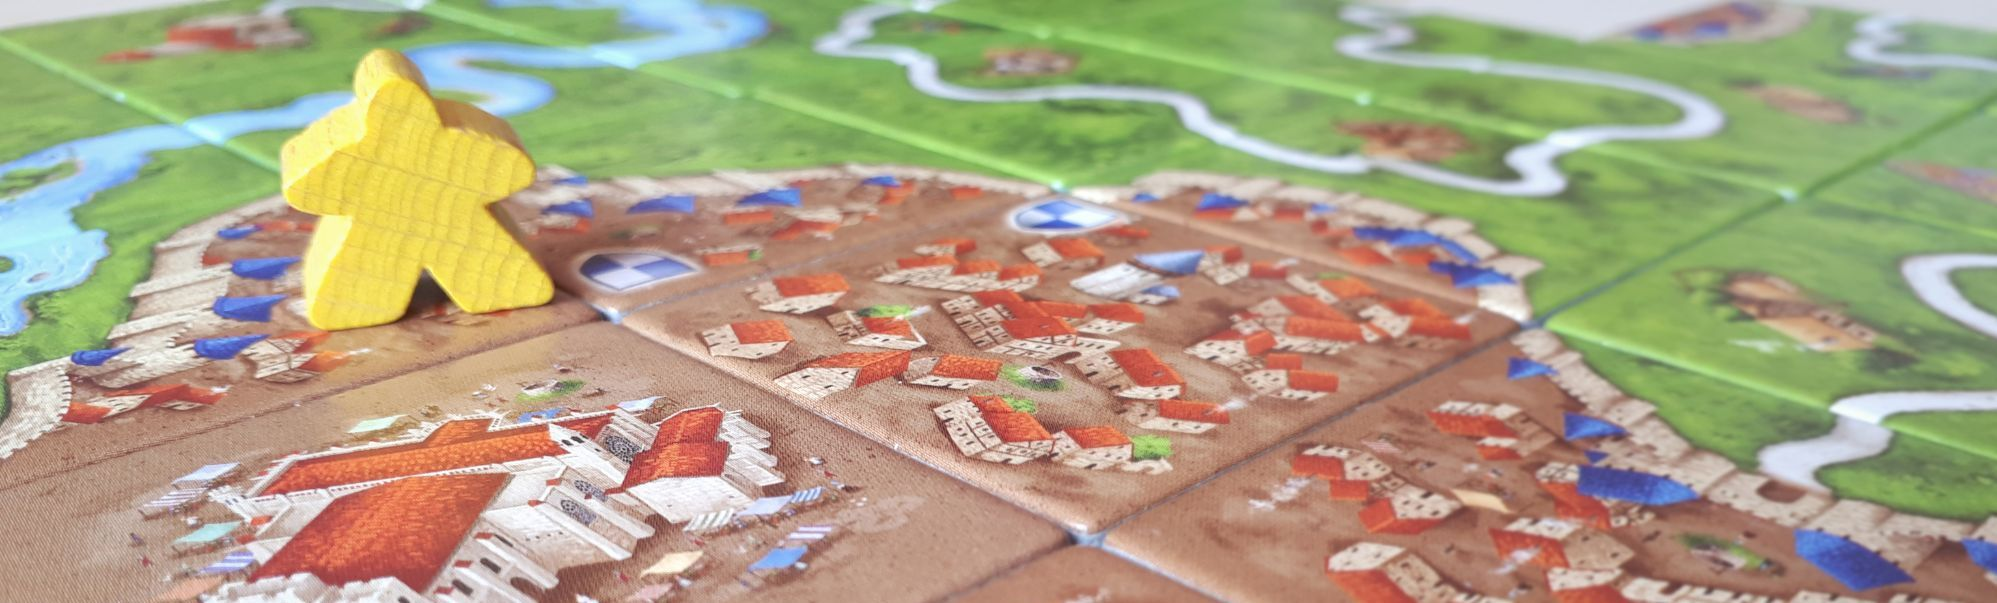 Carcassonne Game with Yellow Meeple